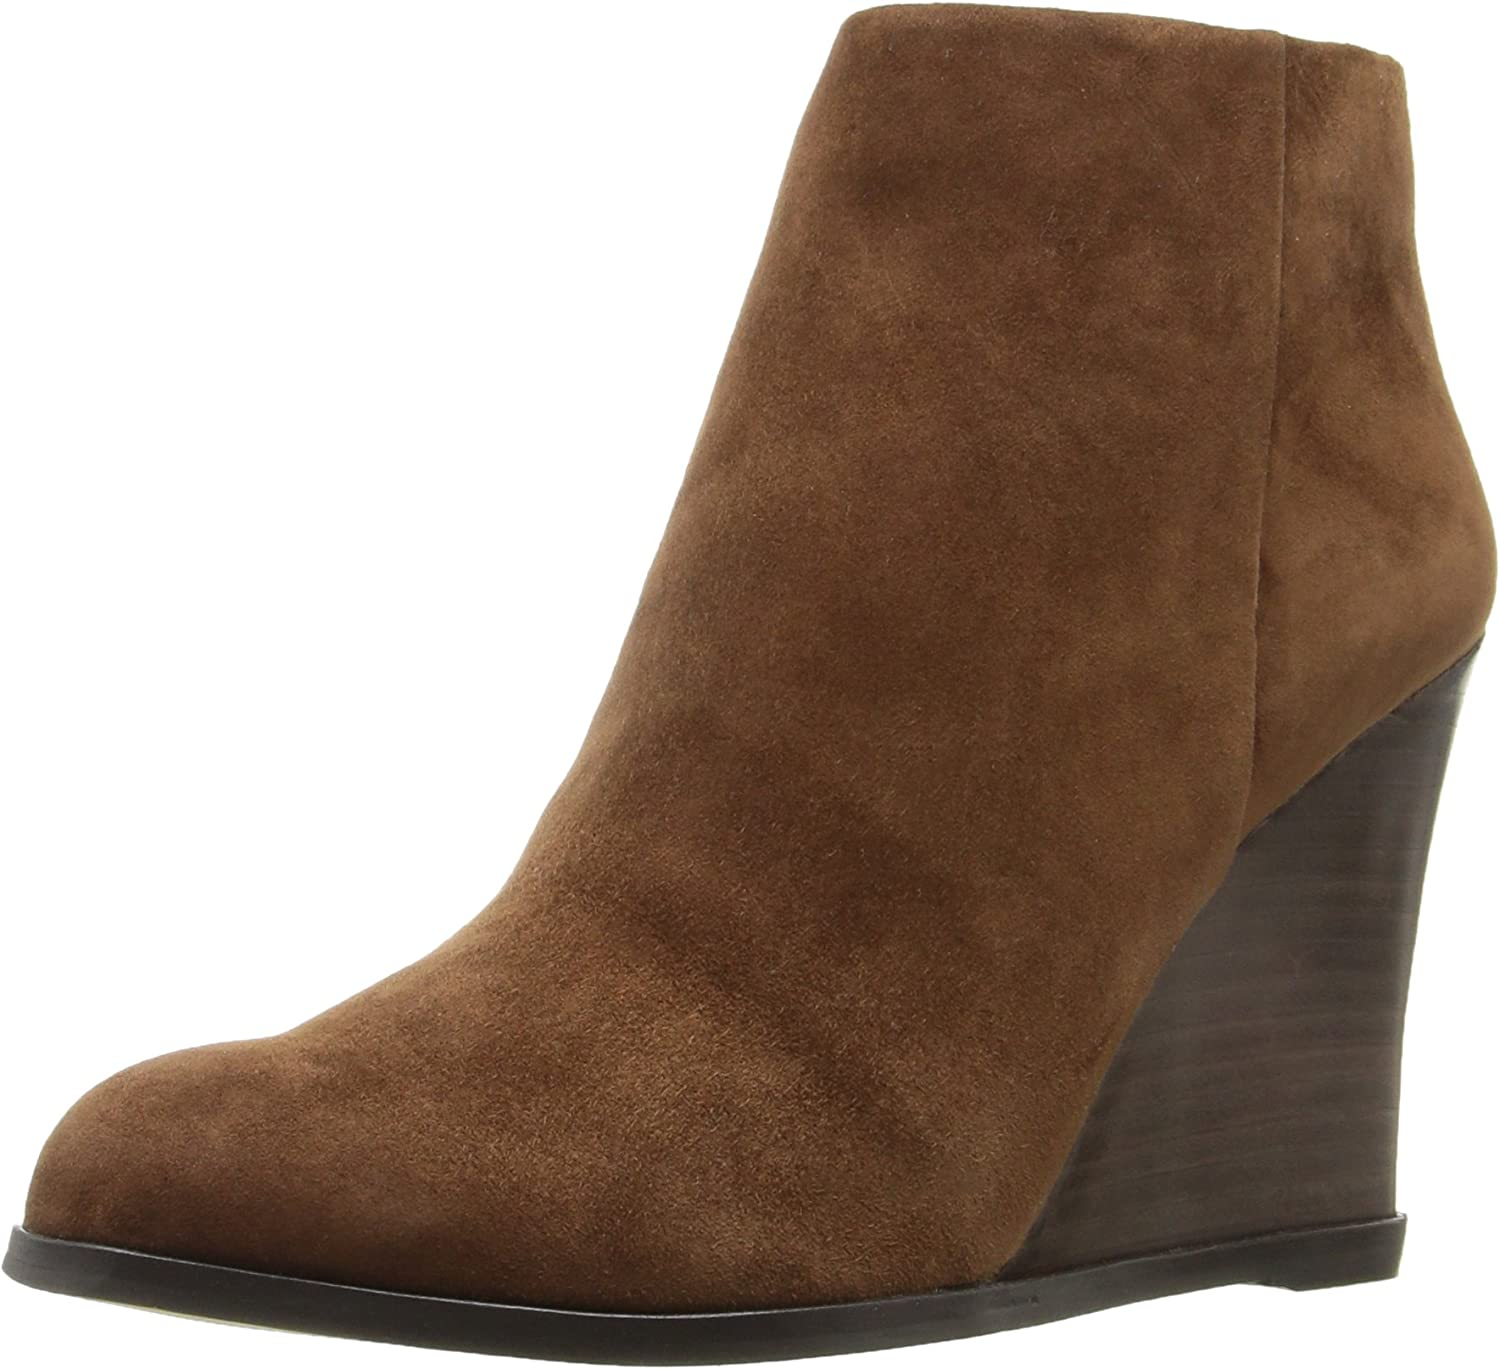 Vince Camuto Women's Gemina Ankle Bootie